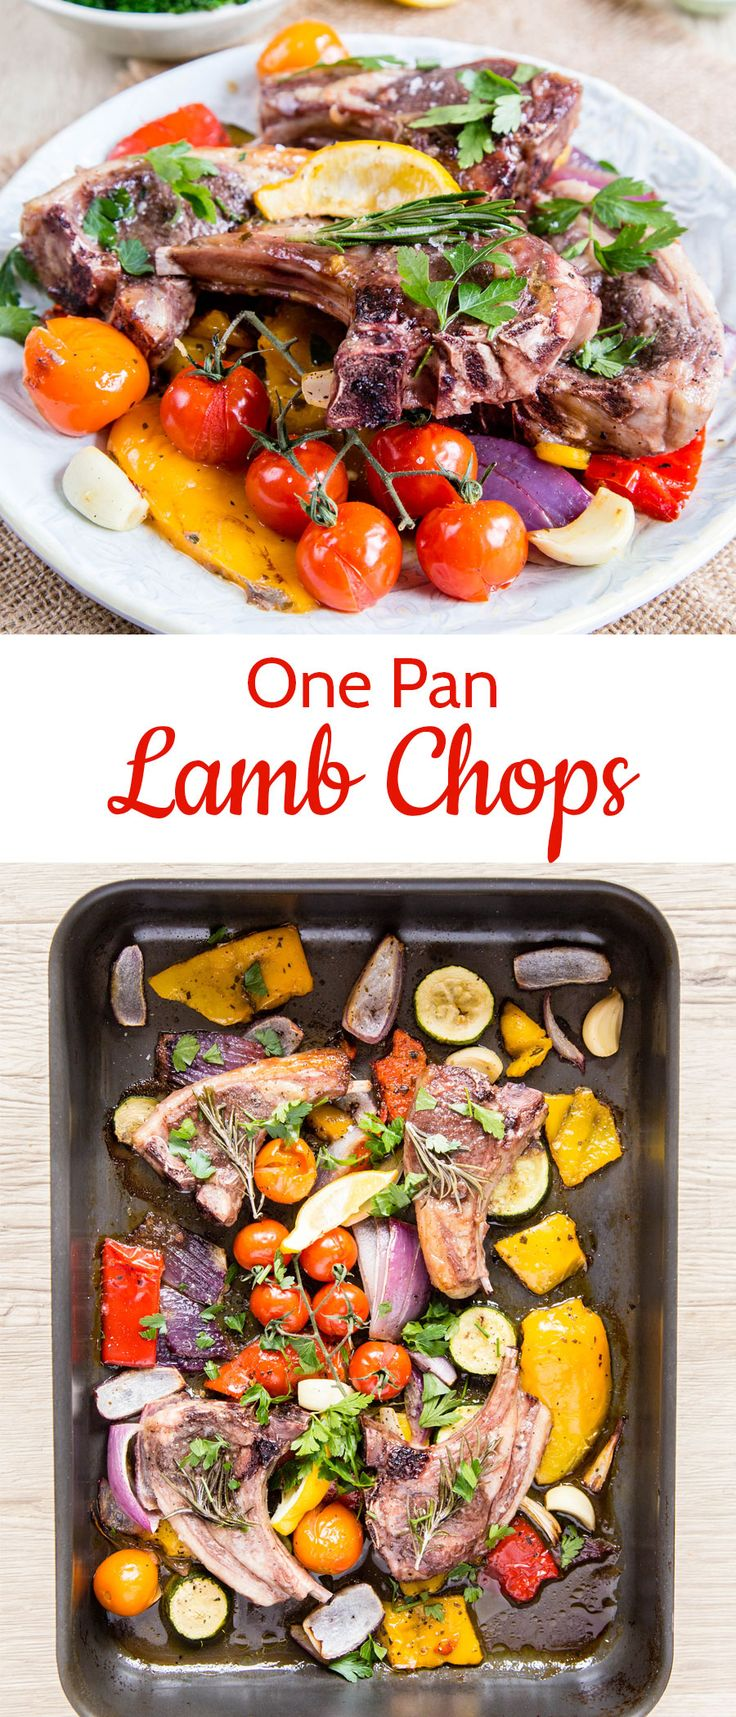 One pan meals are easy to clean up and simple to put together. These one pan lamb chops are a delicious, easy dinner idea that feels fancy enough for a dinner party! #lamb #onepan #dinner #easy